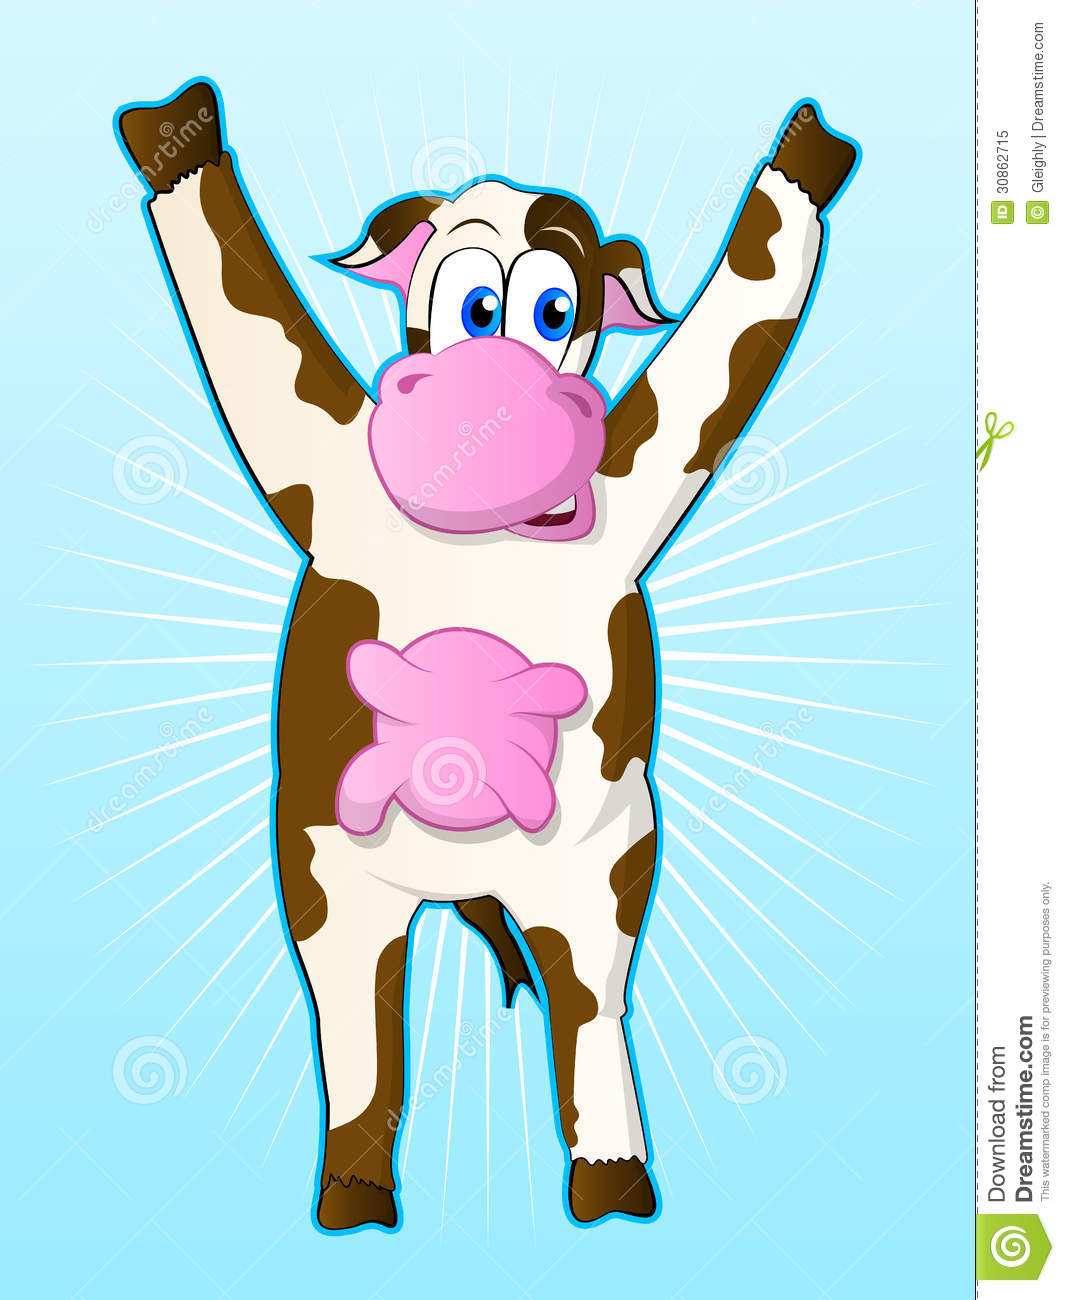 Animated baby cows